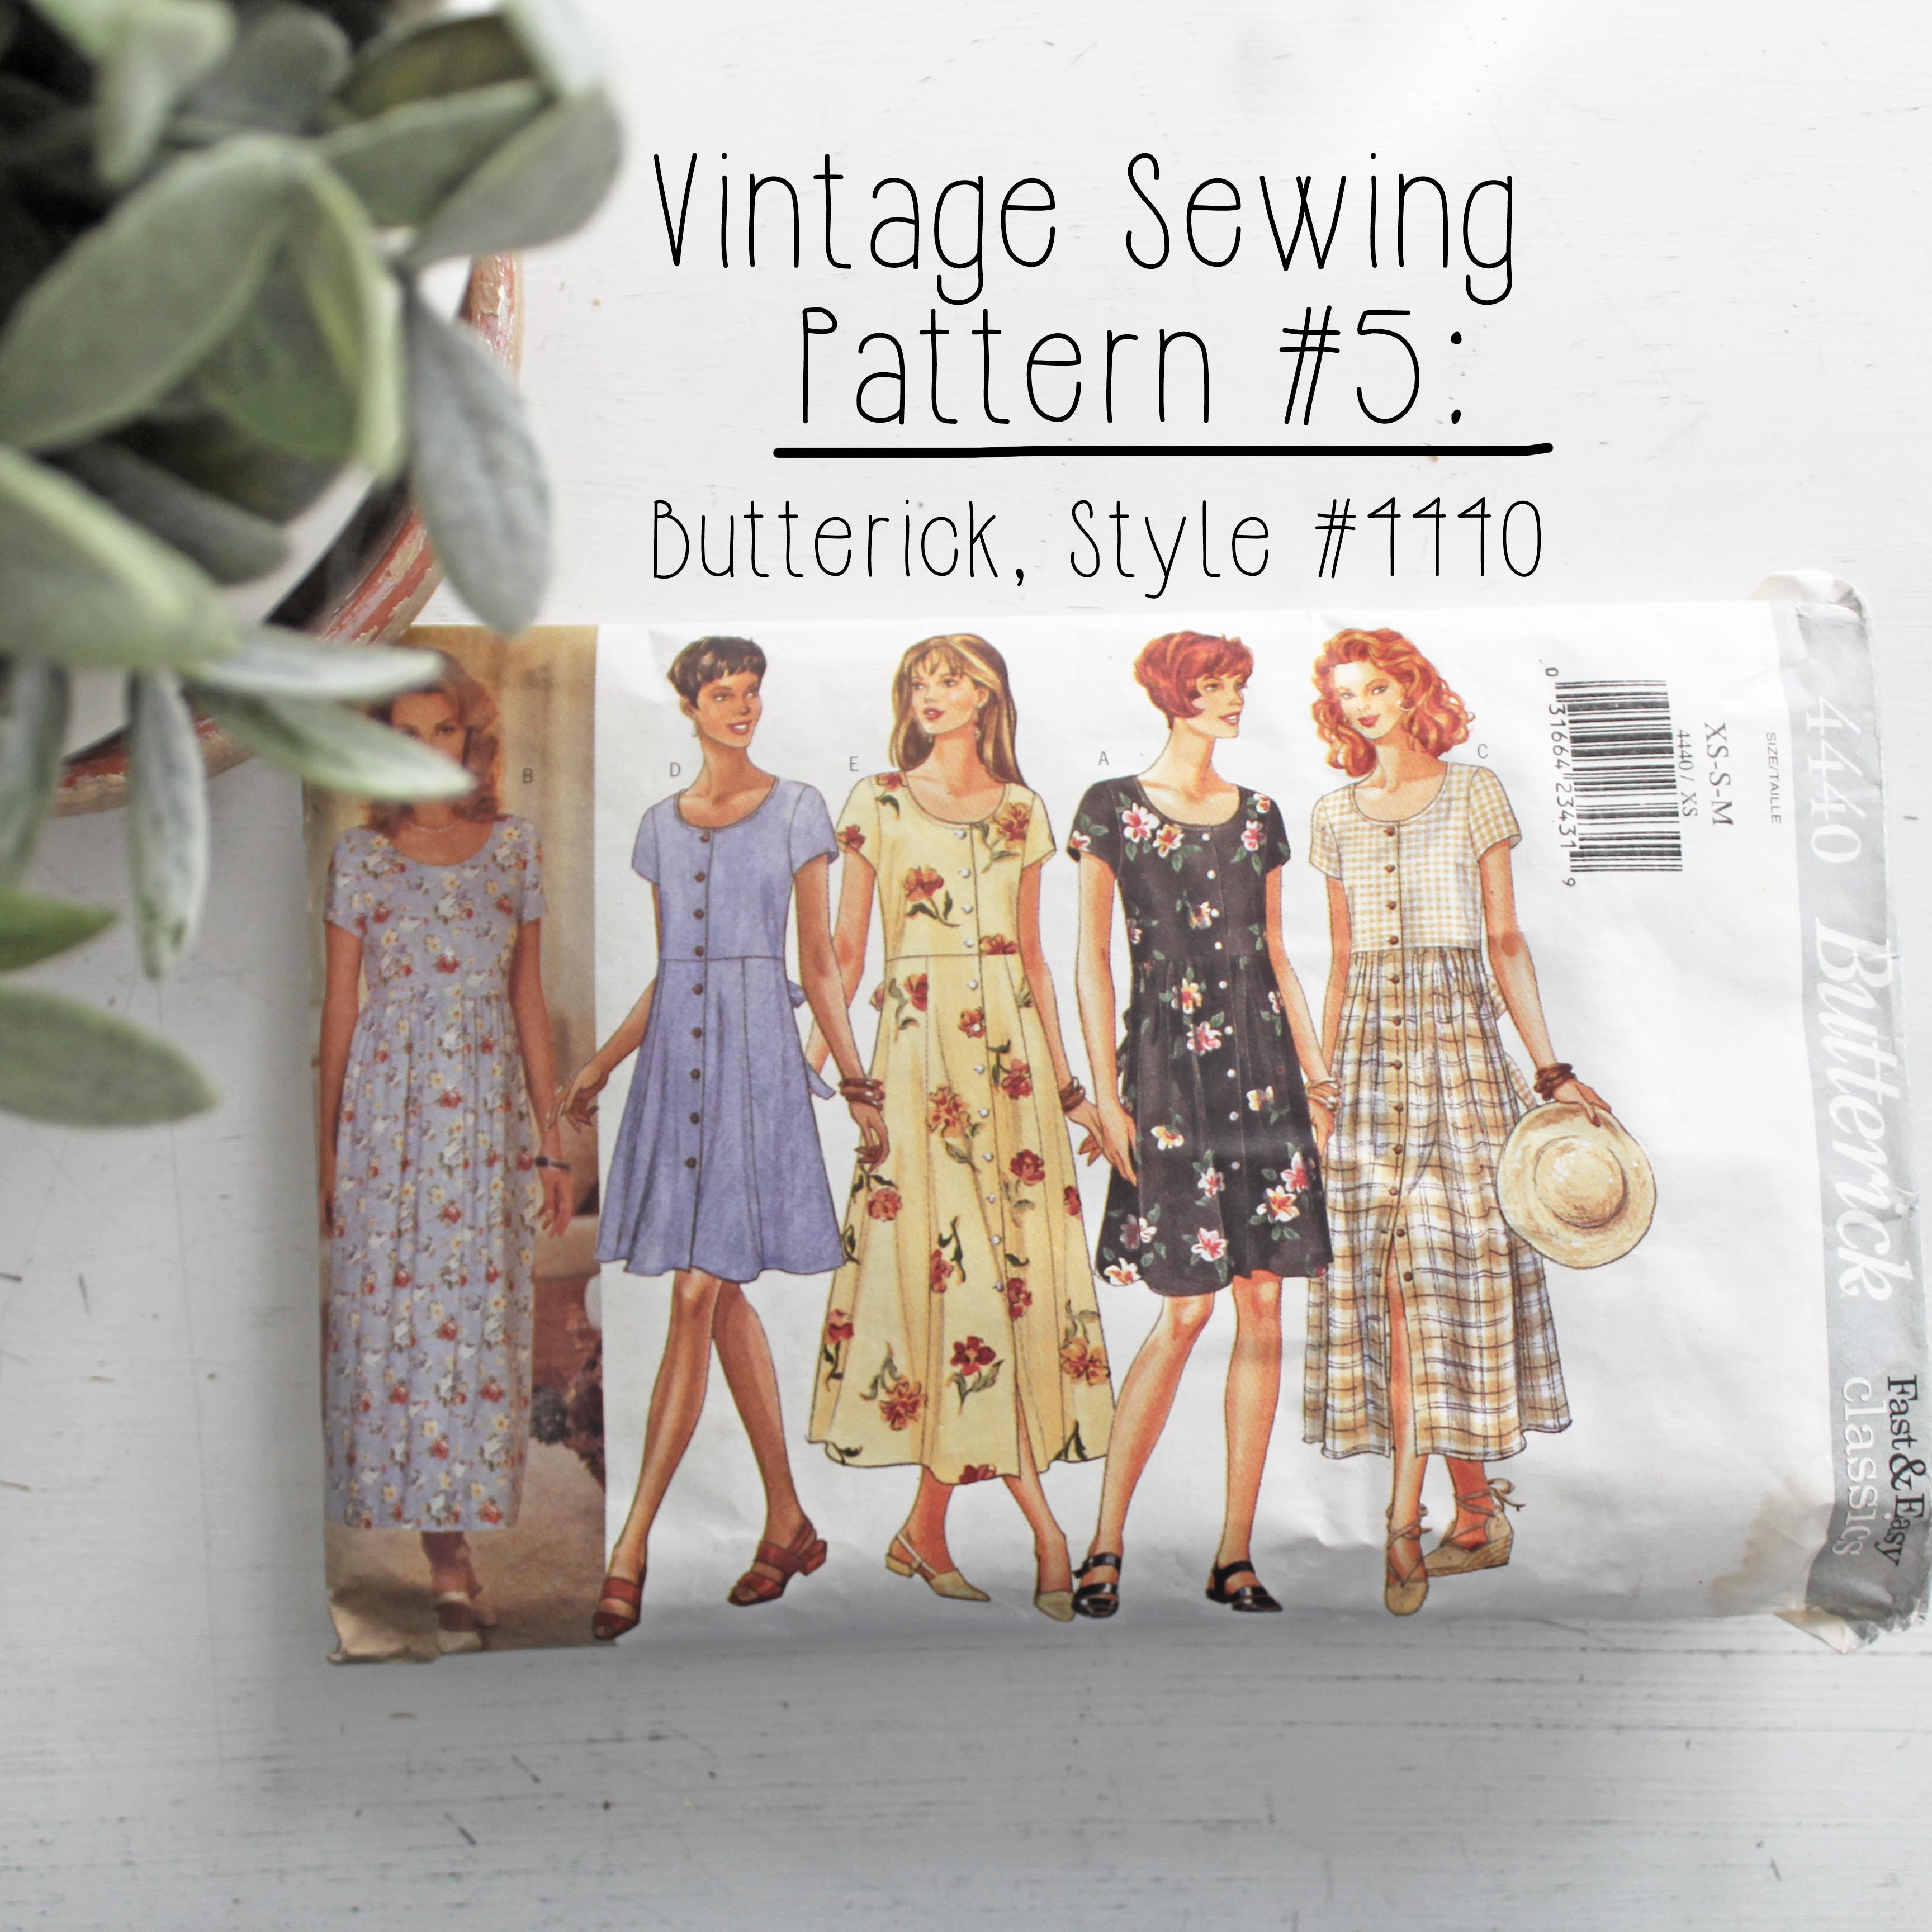 Vintage Sewing Pattern 5 Butterick Style #4440